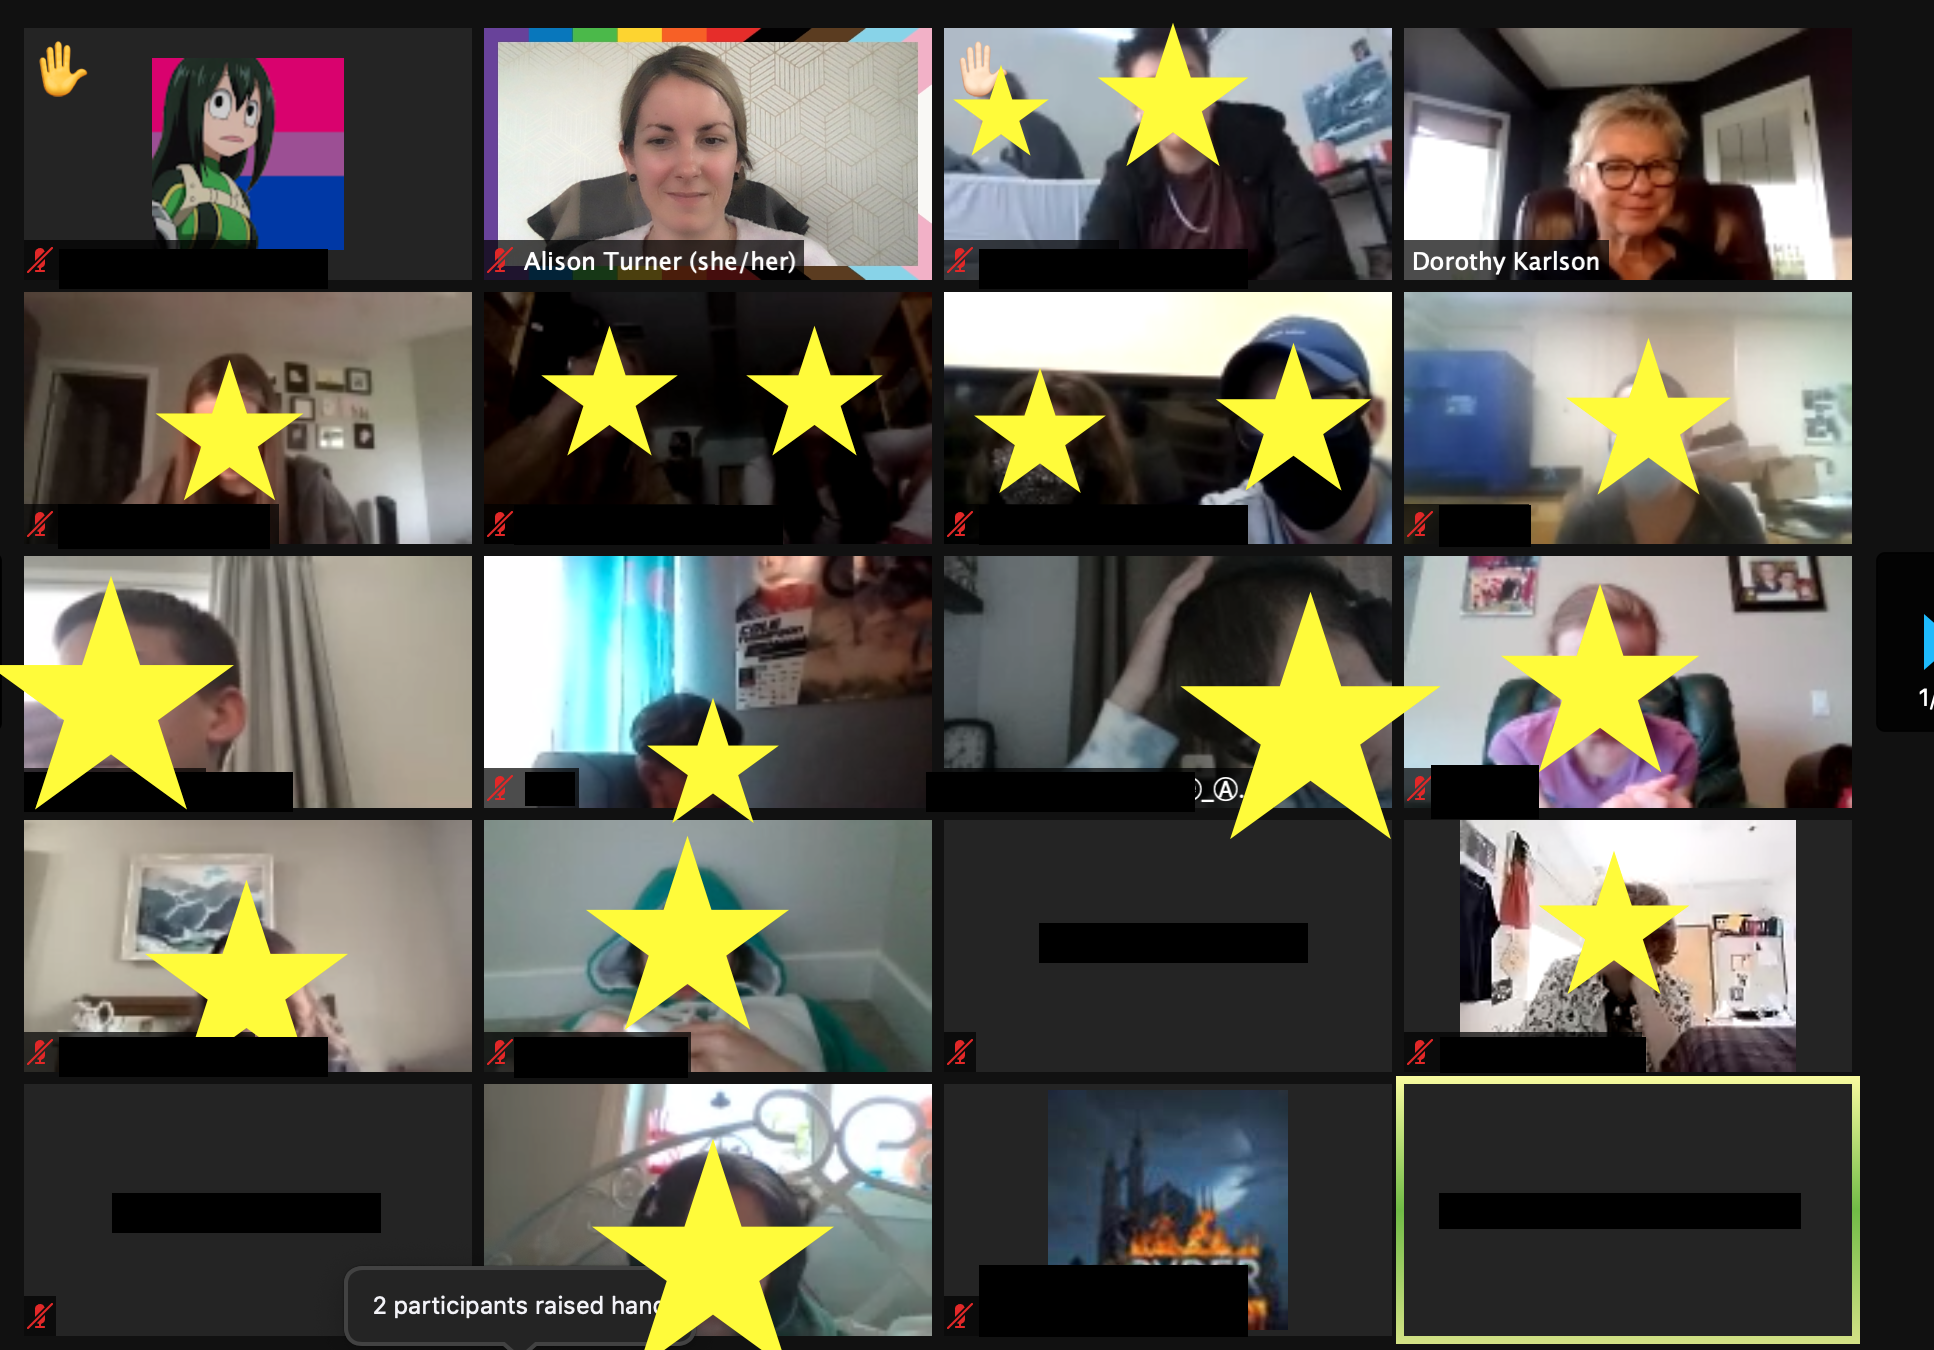 Image of zoom session showing learners and leaders together.